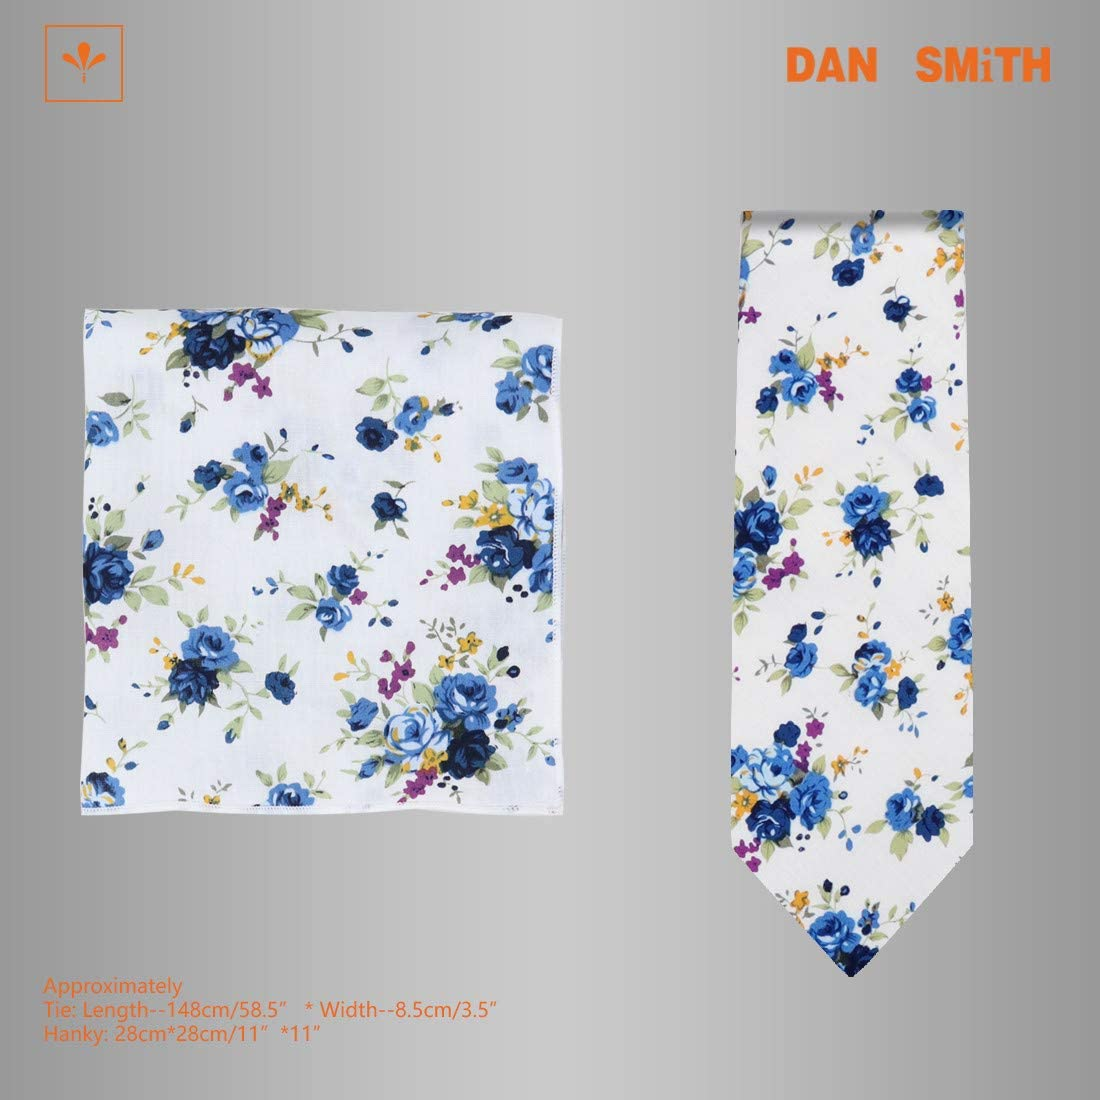 Dan Smith Men's Fashion Cotton Tie Matching Hanky Avaliable, with Box